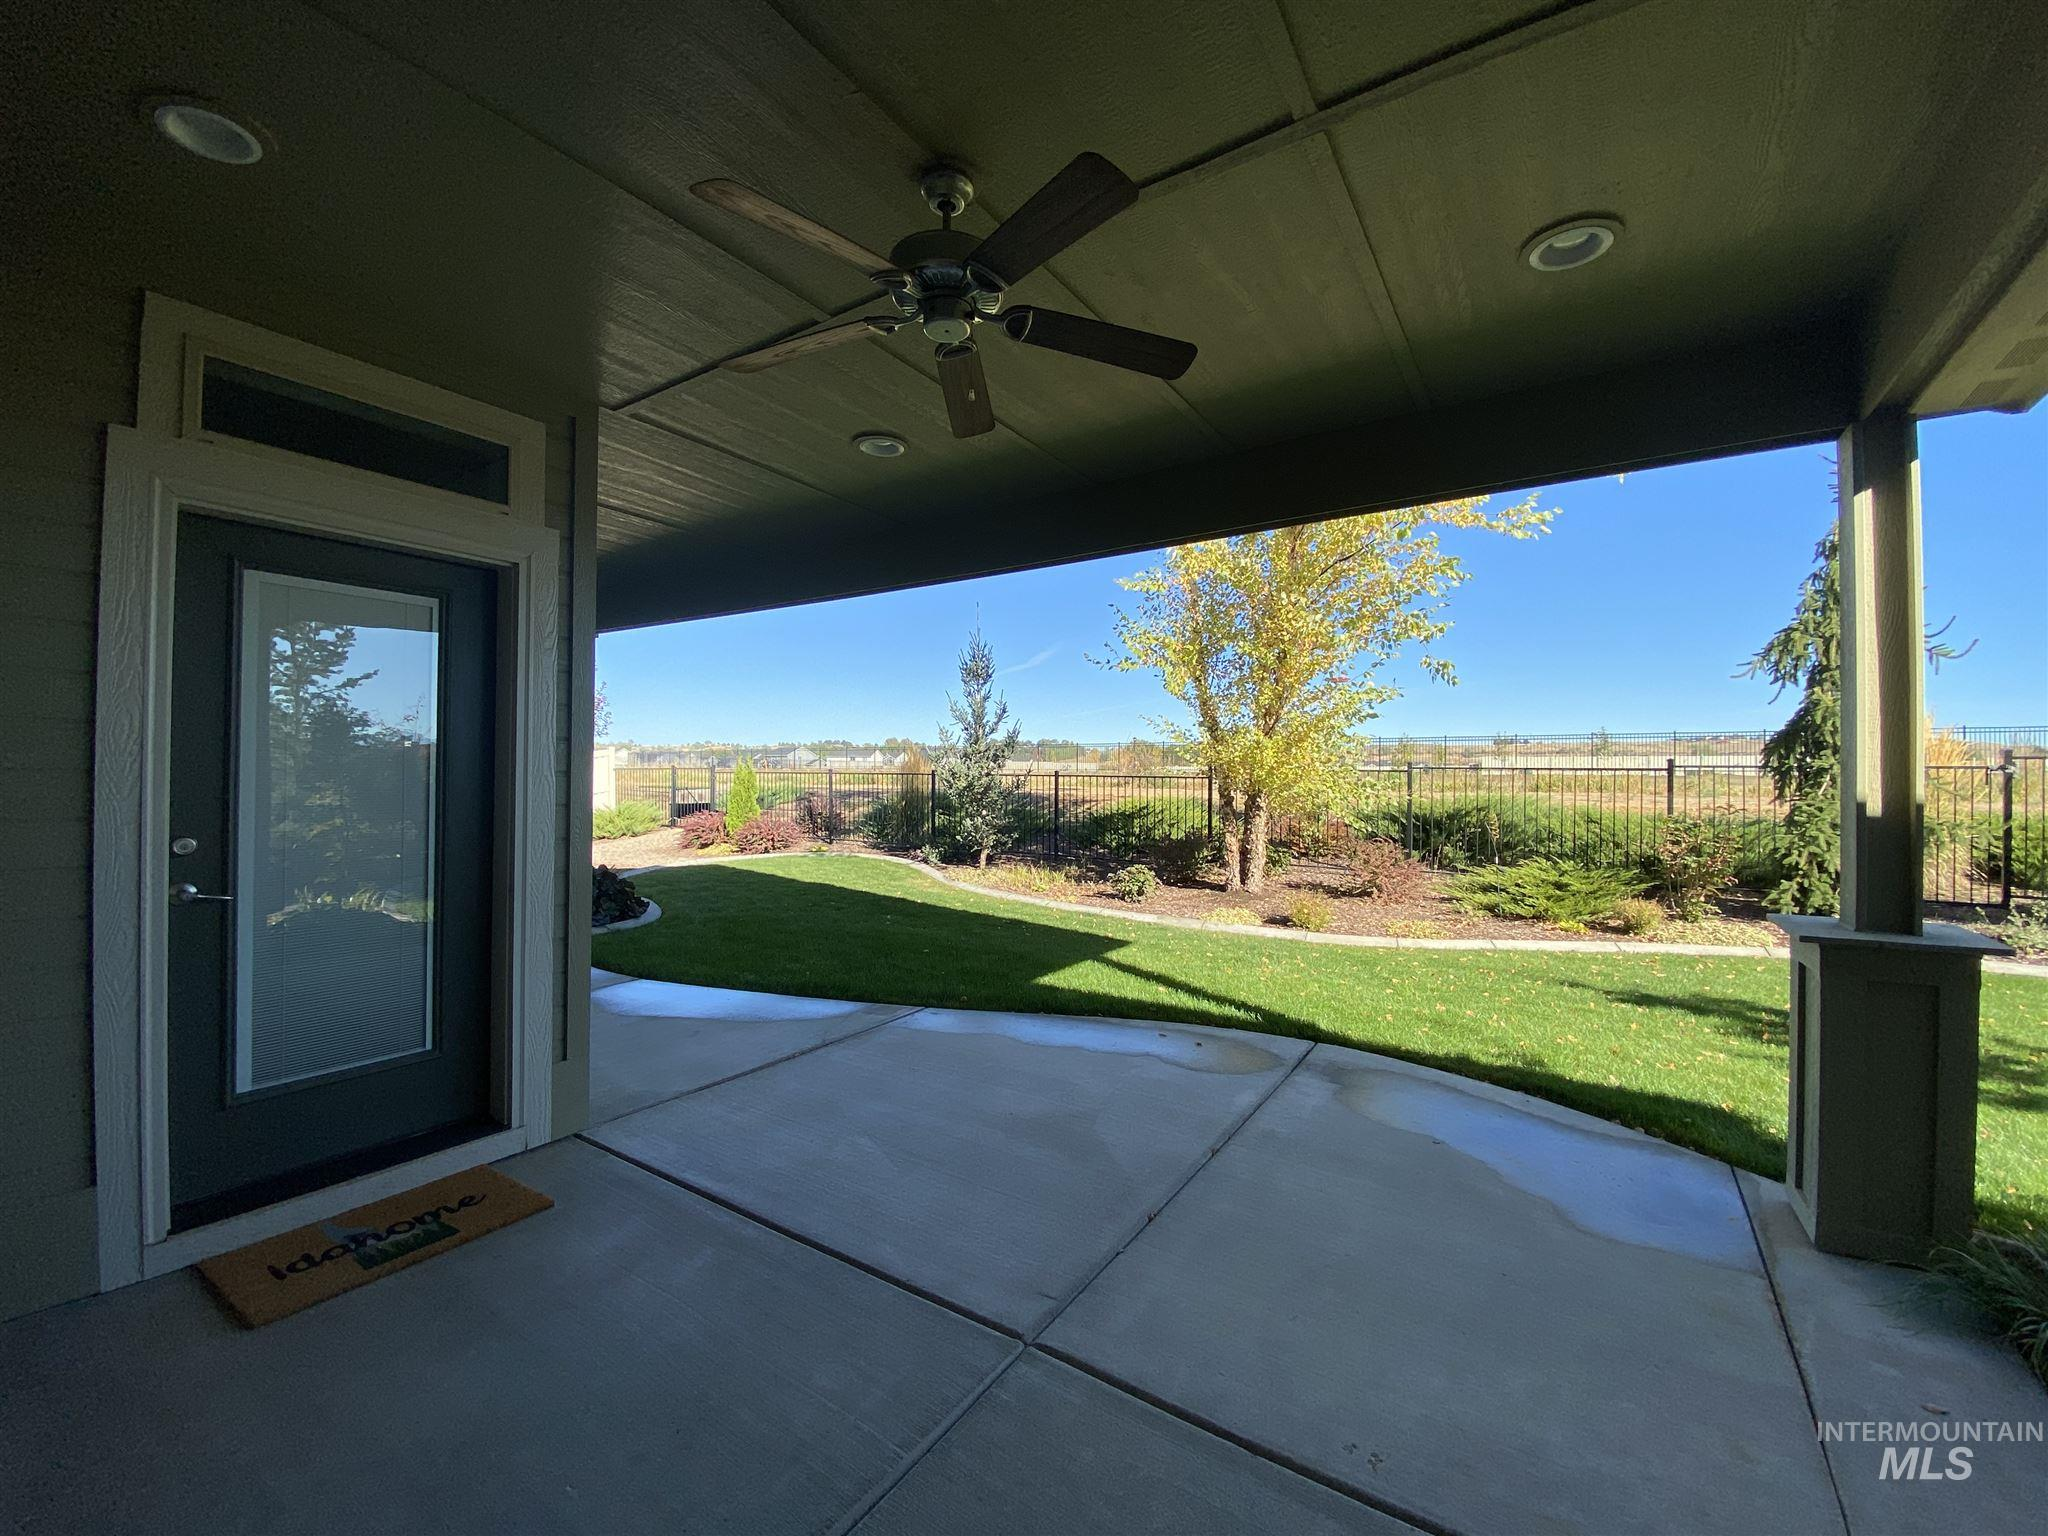 11500 W Pathview, Star, Idaho 83669, 3 Bedrooms, 2.5 Bathrooms, Rental For Rent, Price $2,900, 98783032